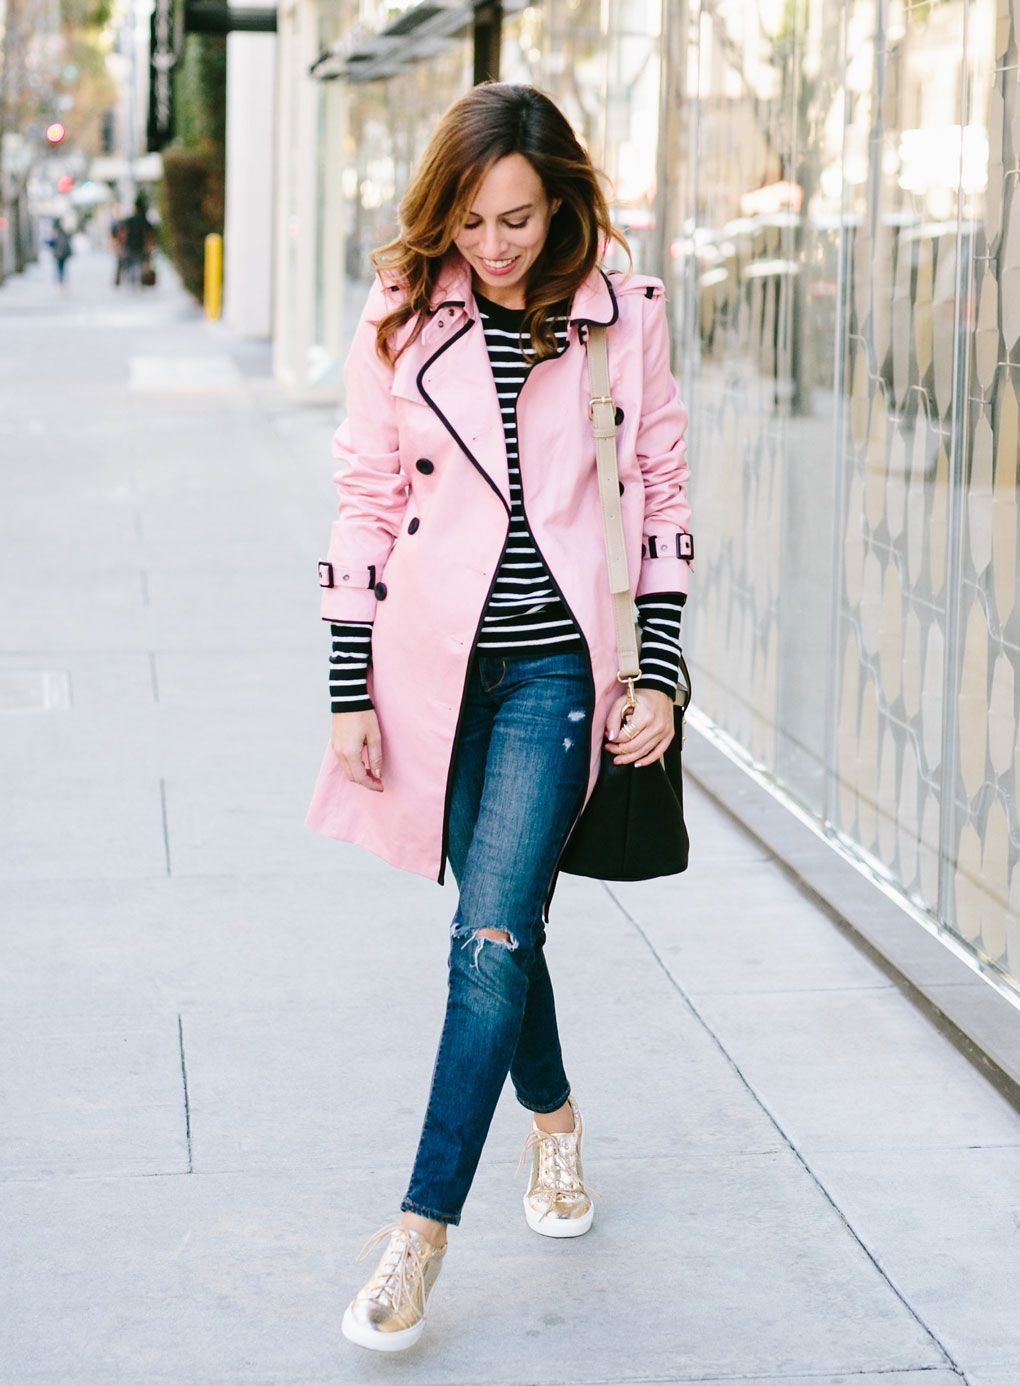 pink trench coat - Sydne Style  Making Weekend Wear Fun With Pink and Gold